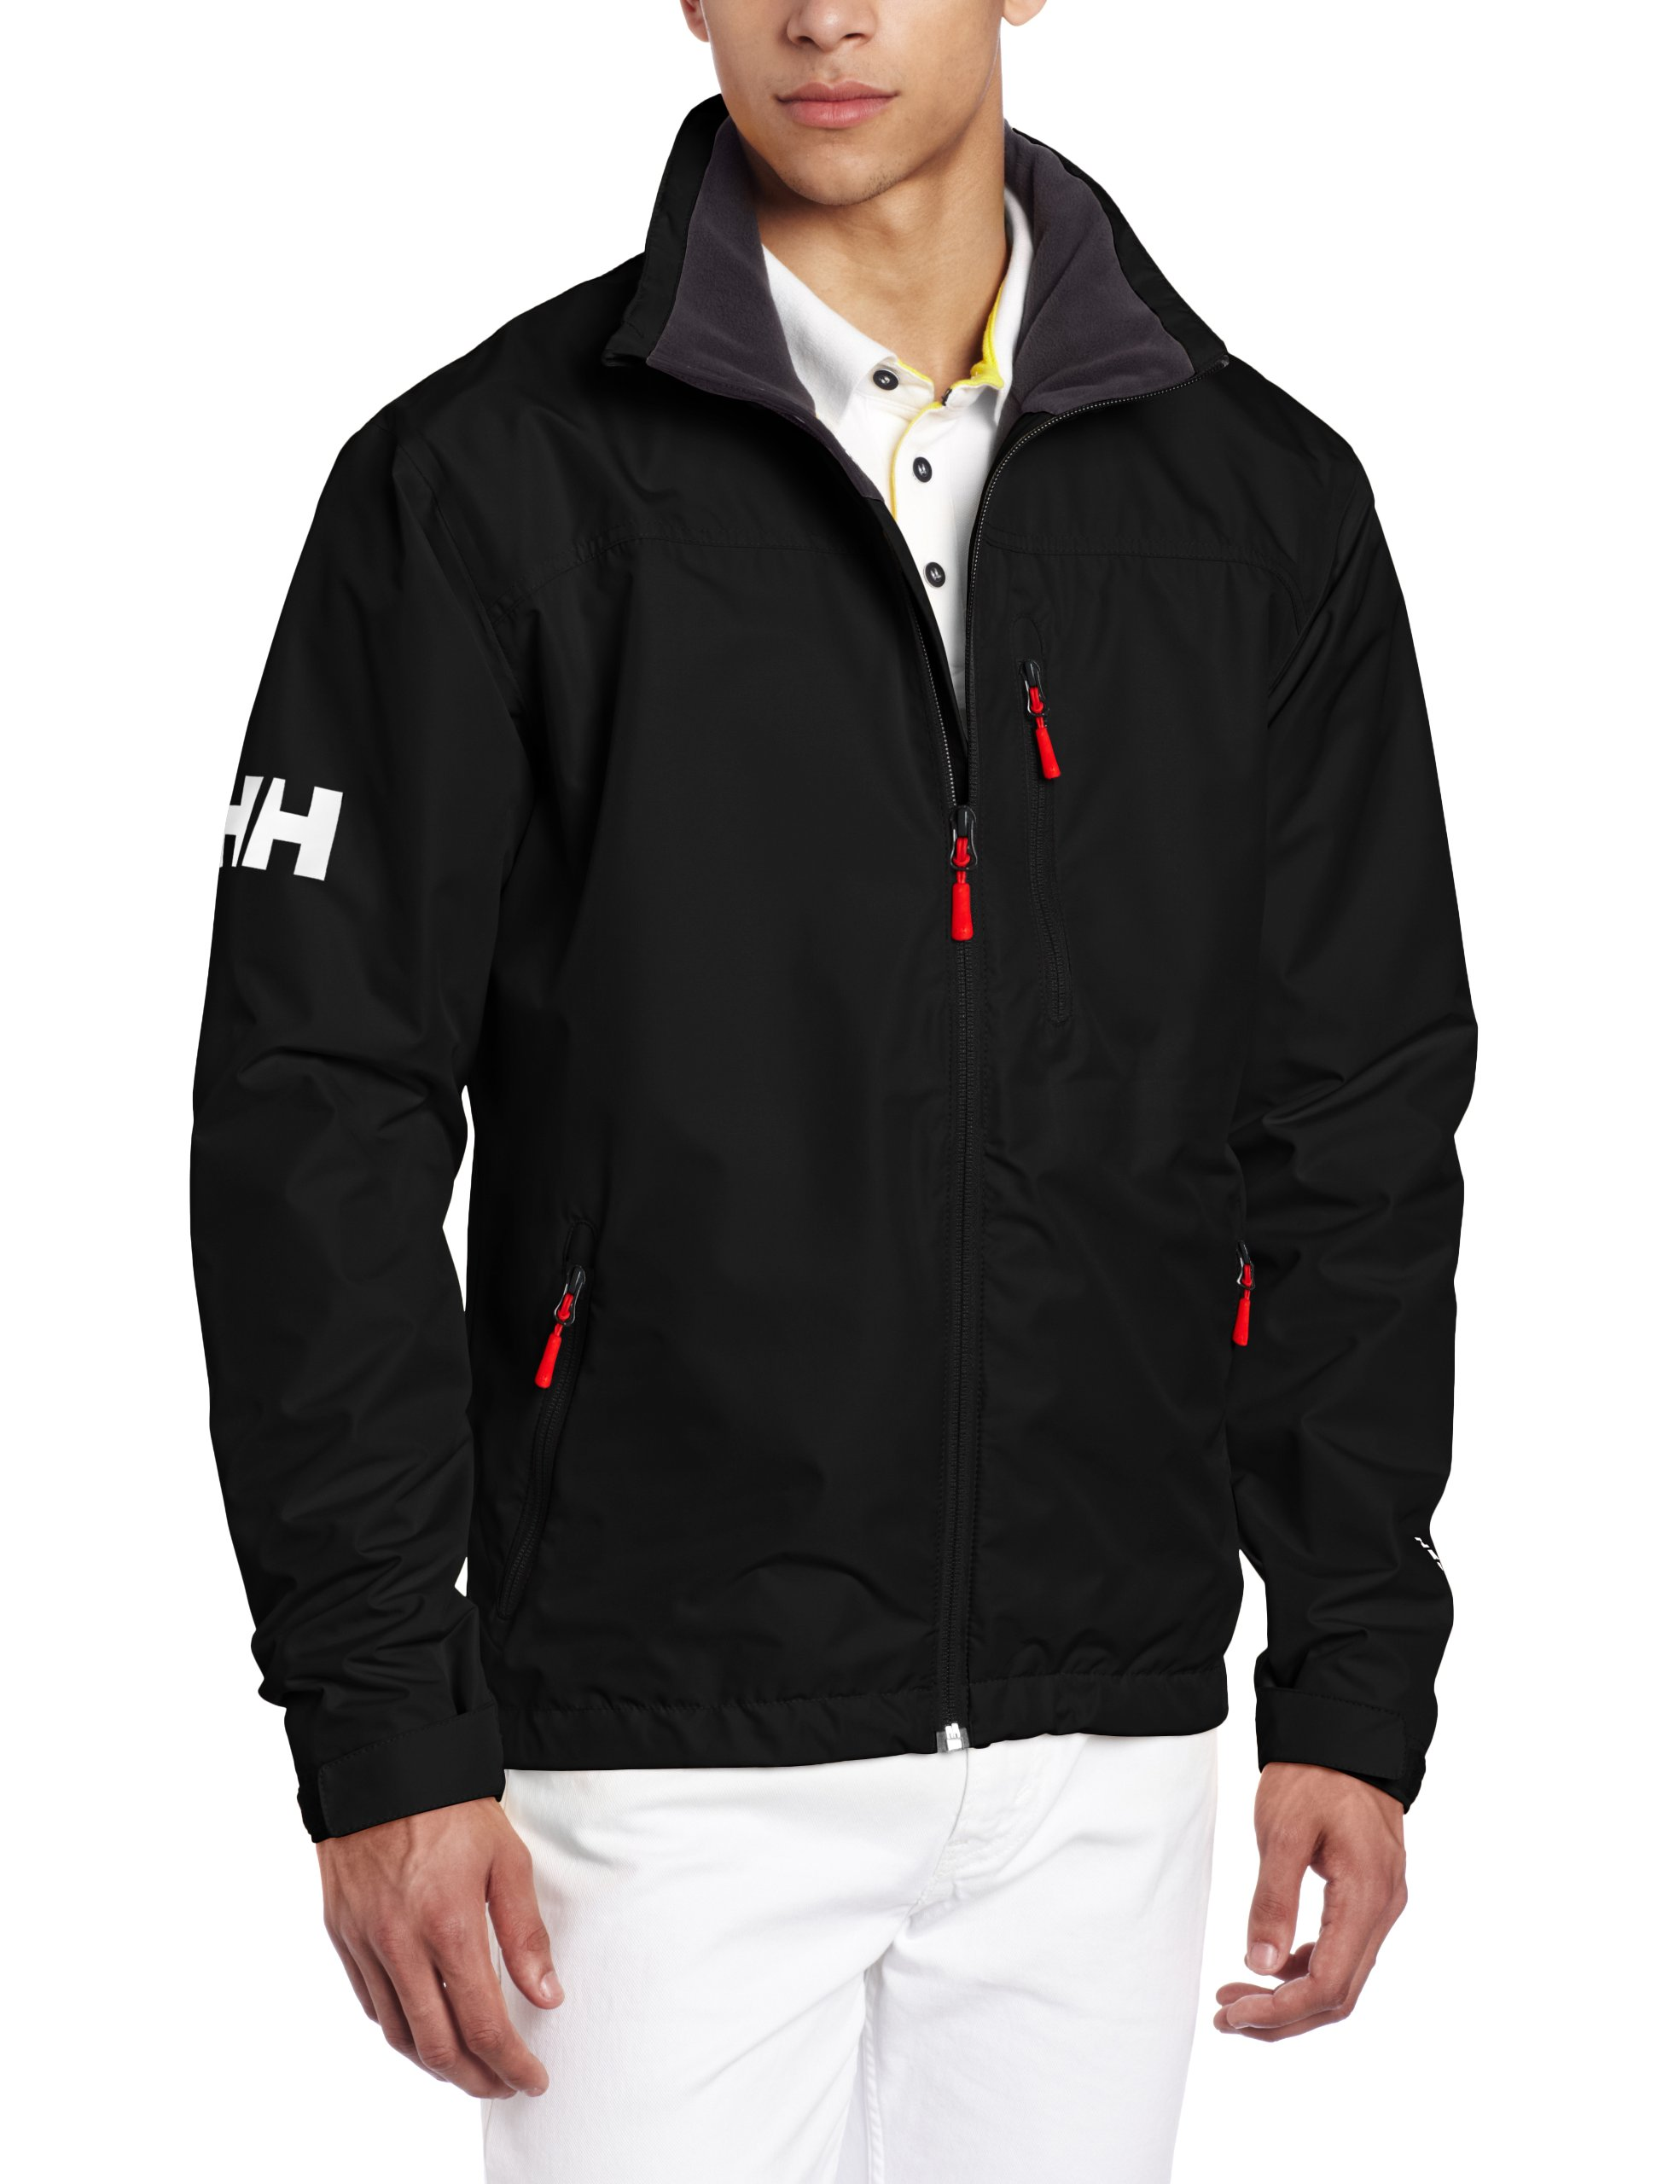 Helly Hansen Crew Midlayer Jacket, Chaqueta Impermeable para Hombre, Color Negro (Black), Talla L